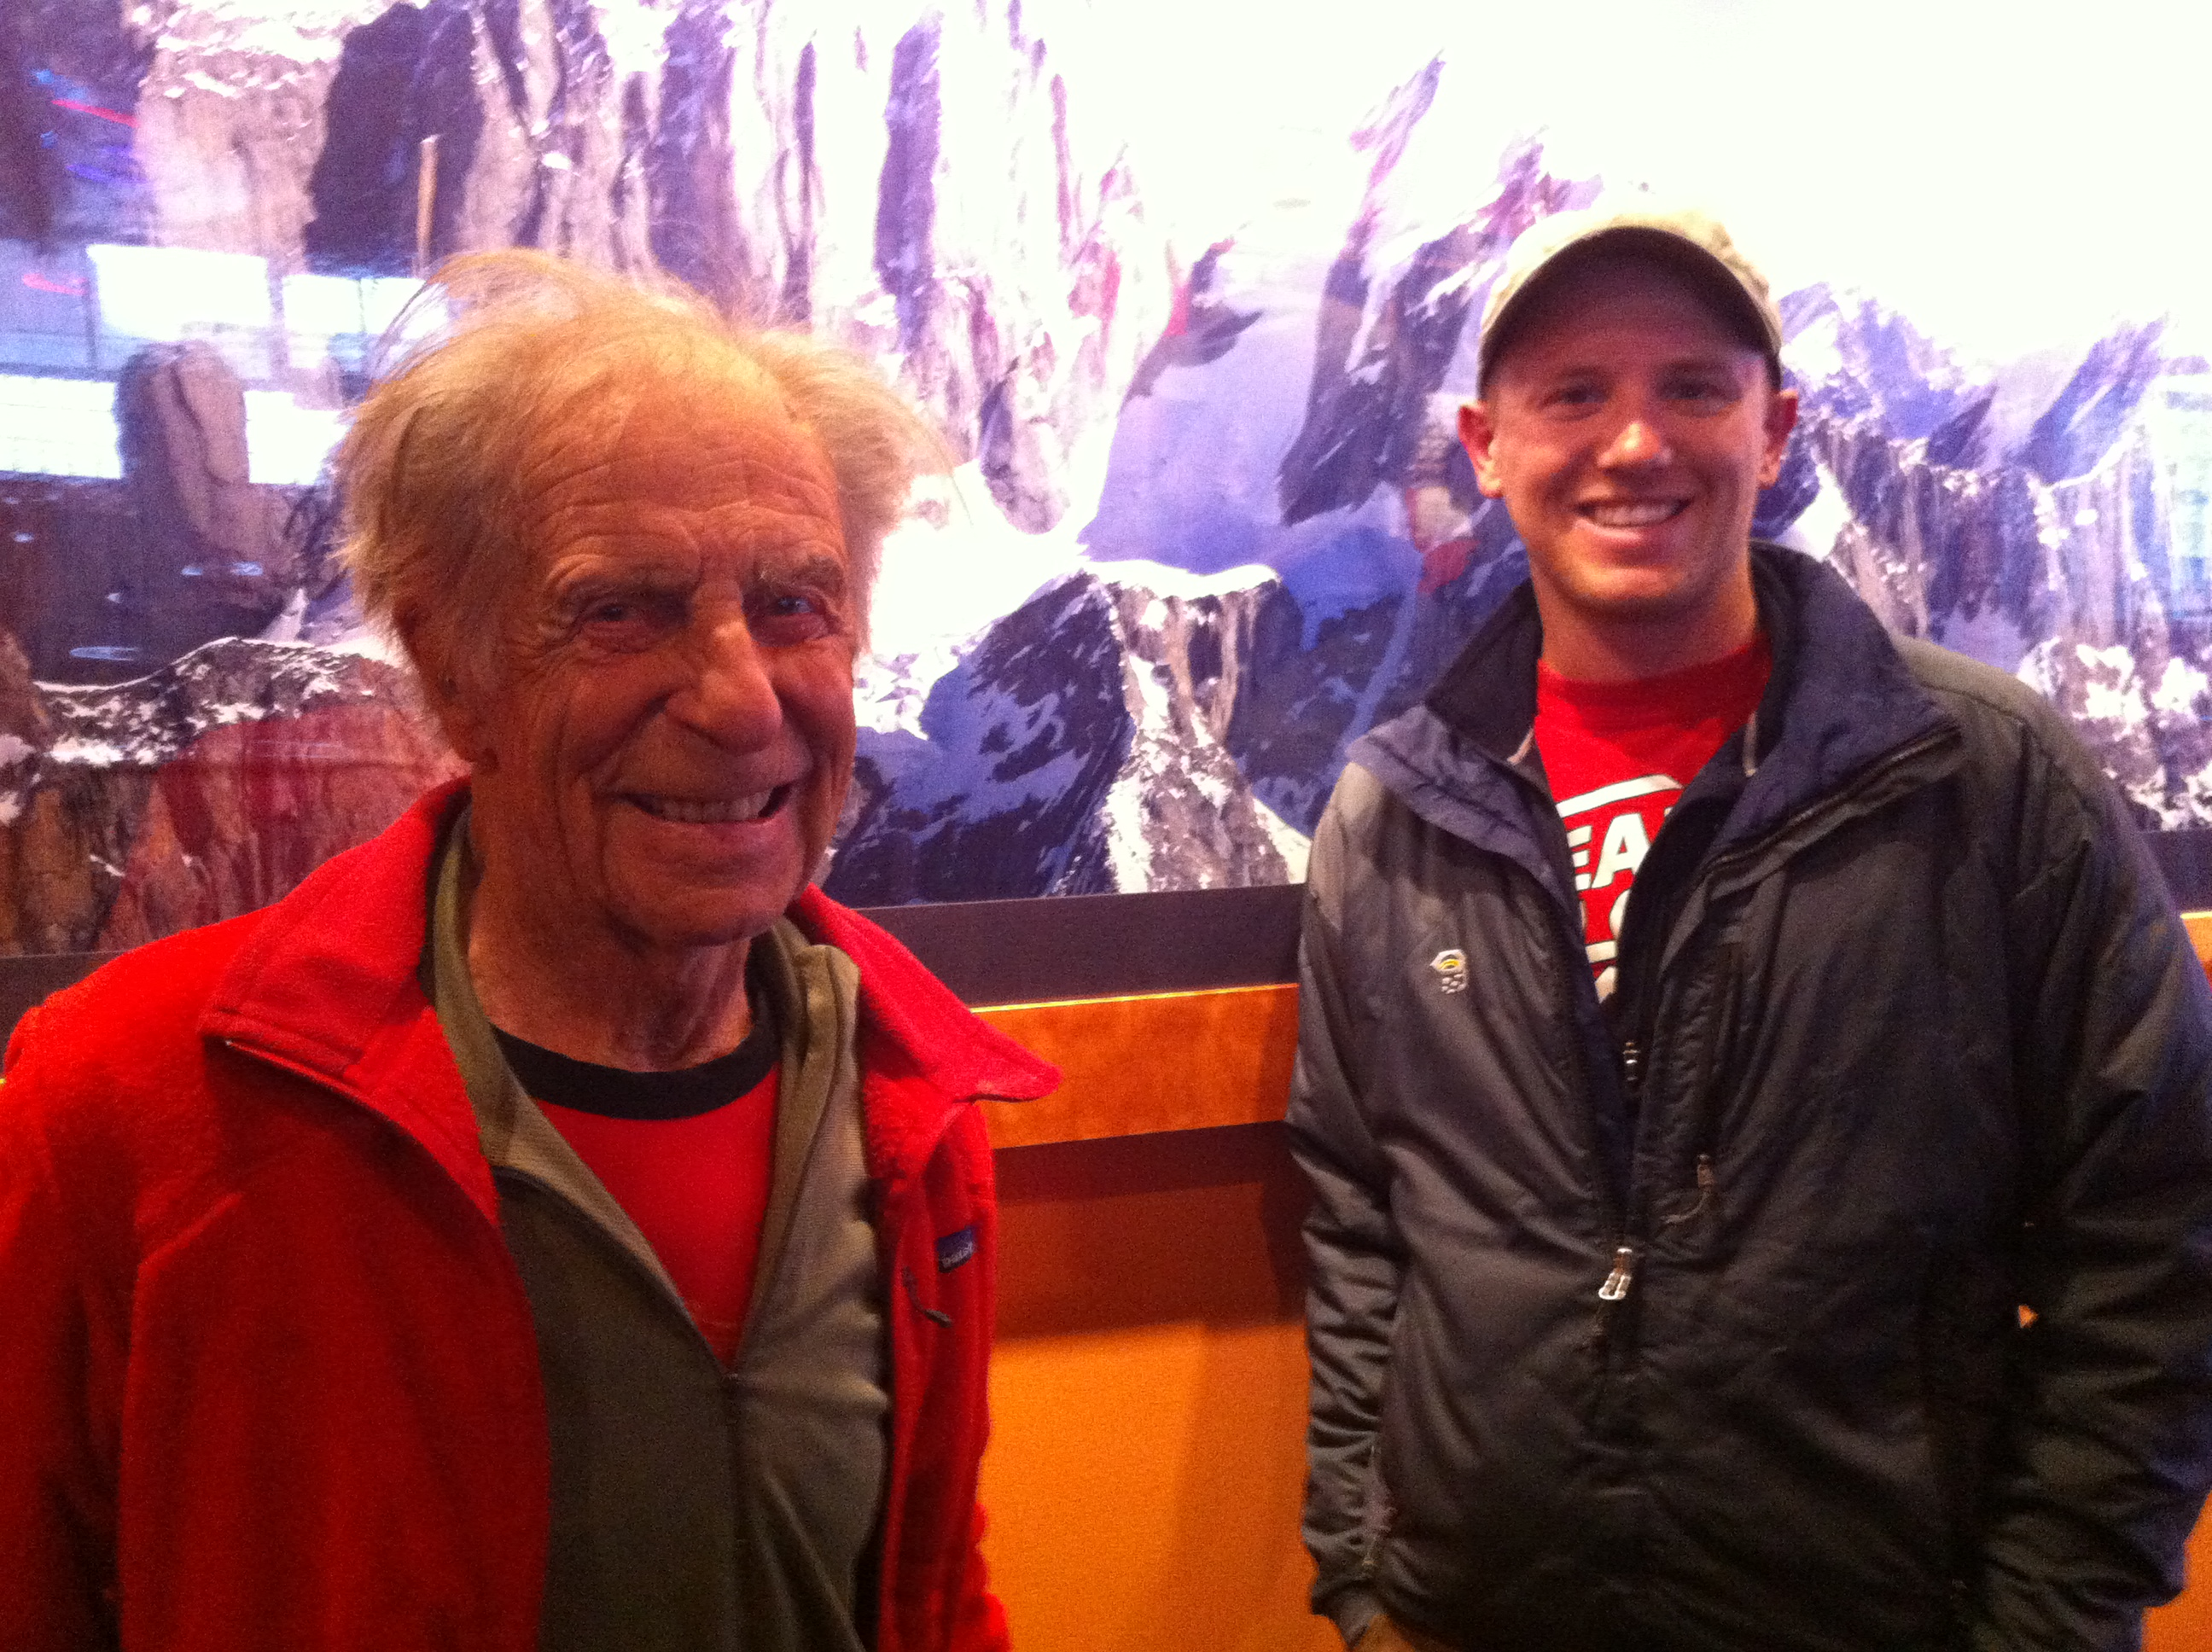 Fred Beckey (left) and Clint Helander (right).